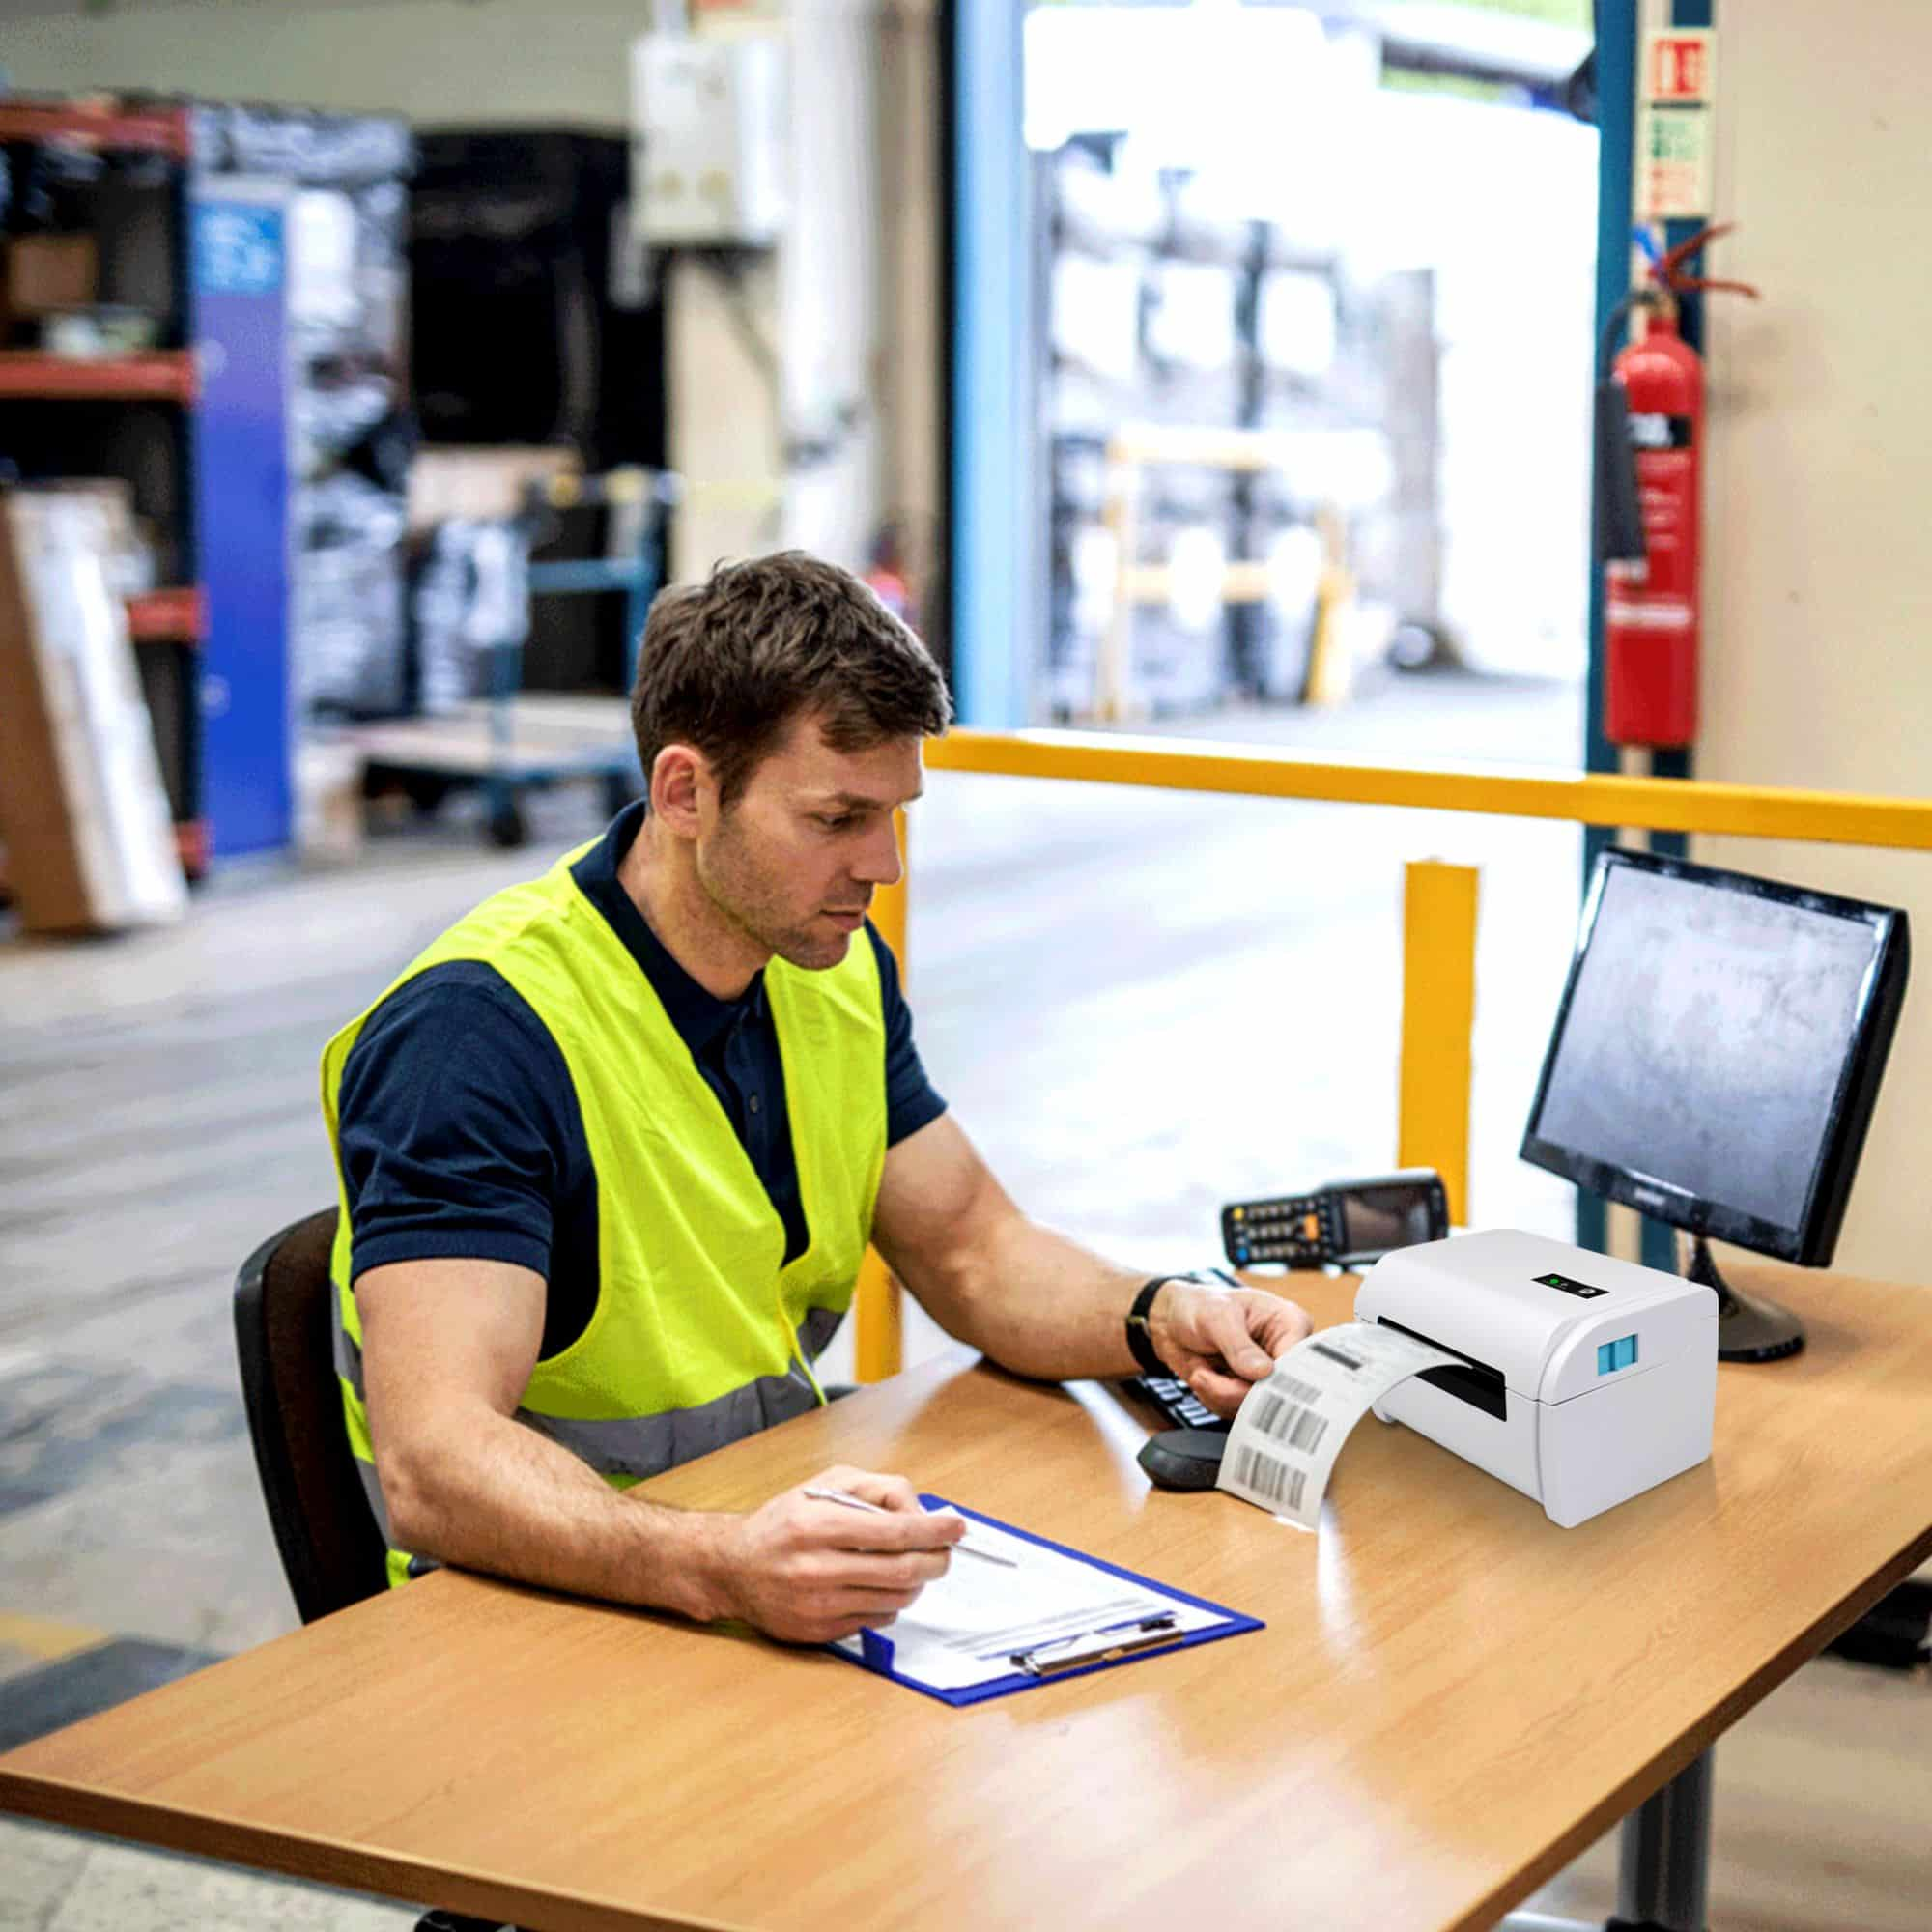 All You Need To Know About 4-inch Thermal Printer Applications